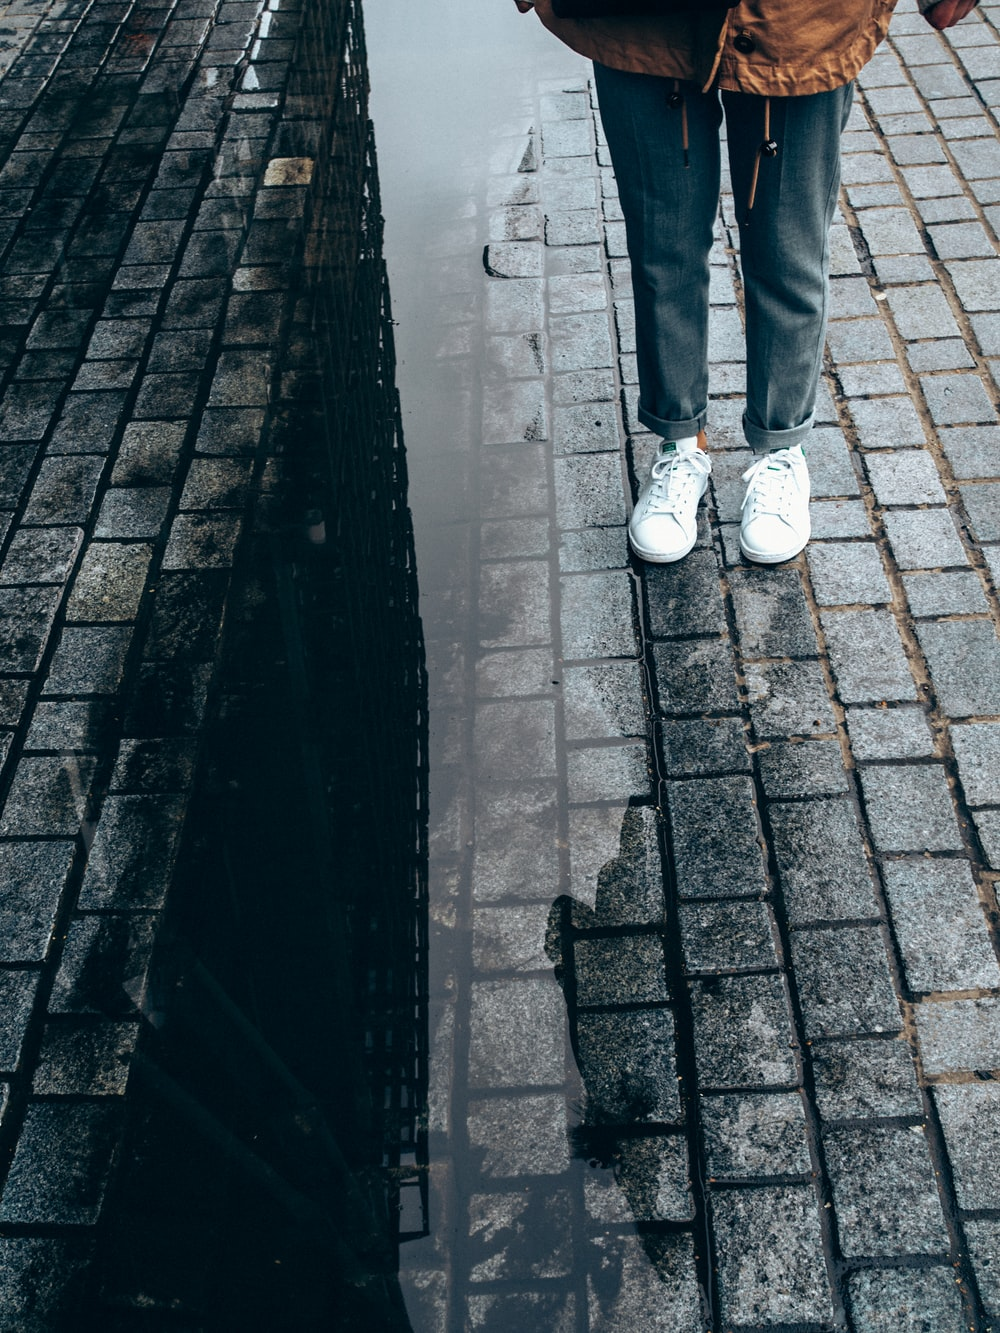 person wearing pair of white low-top sneakers